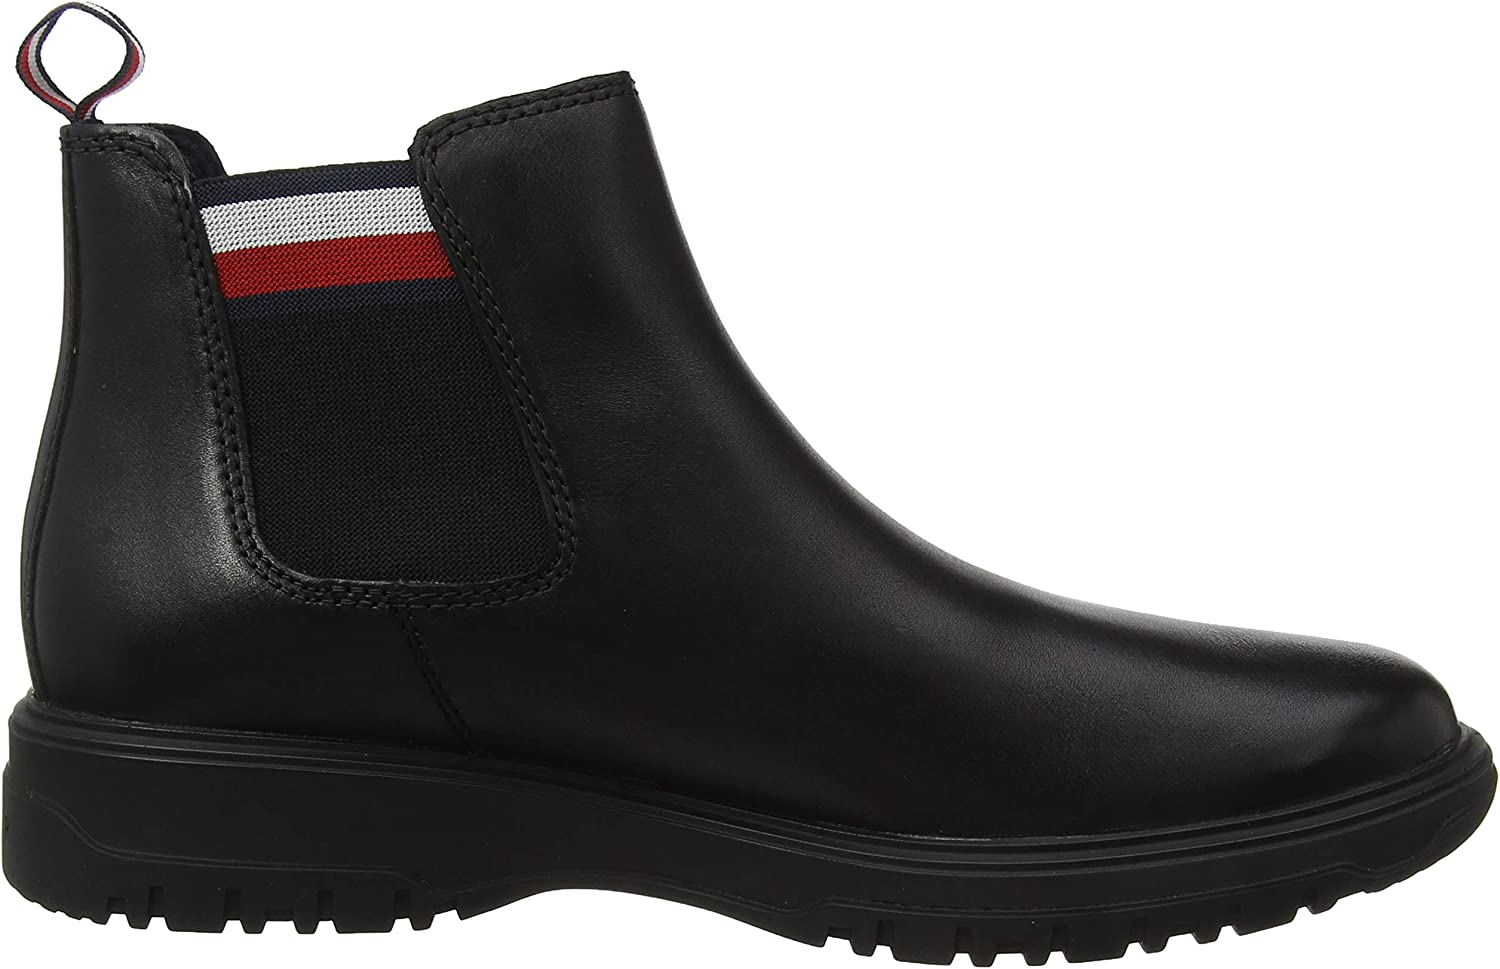 Tommy Hilfiger Cleated Outsole Chelsea Boot Bottes /& Bottines Classiques Homme